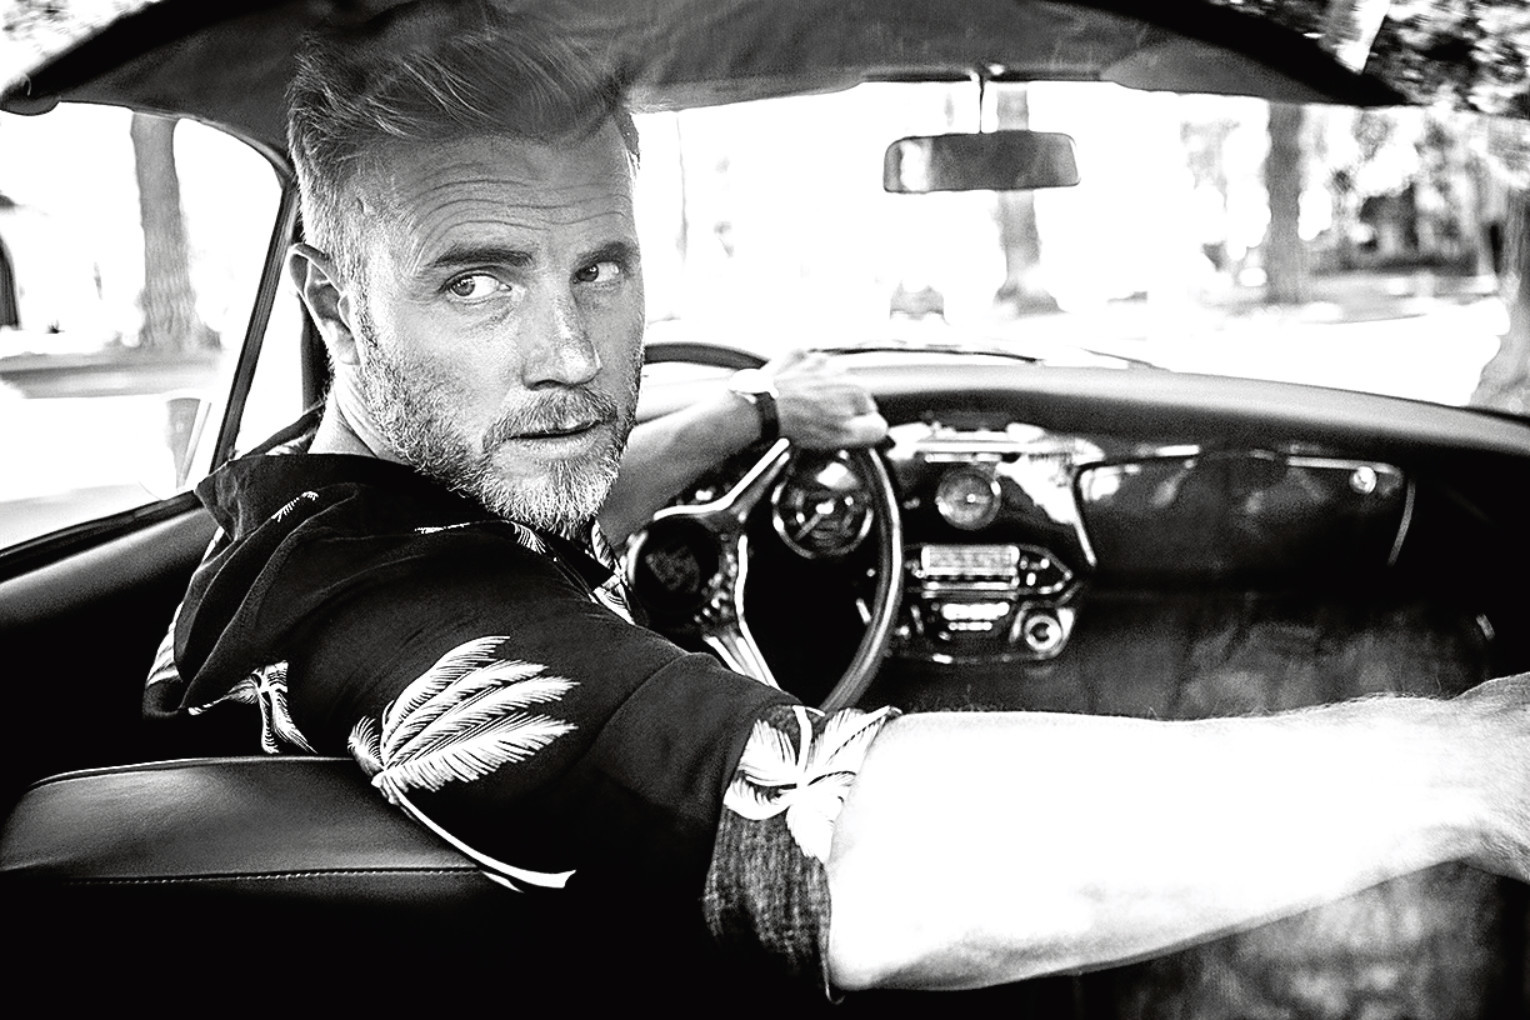 - Gary Barlow Handout for 2017 tour